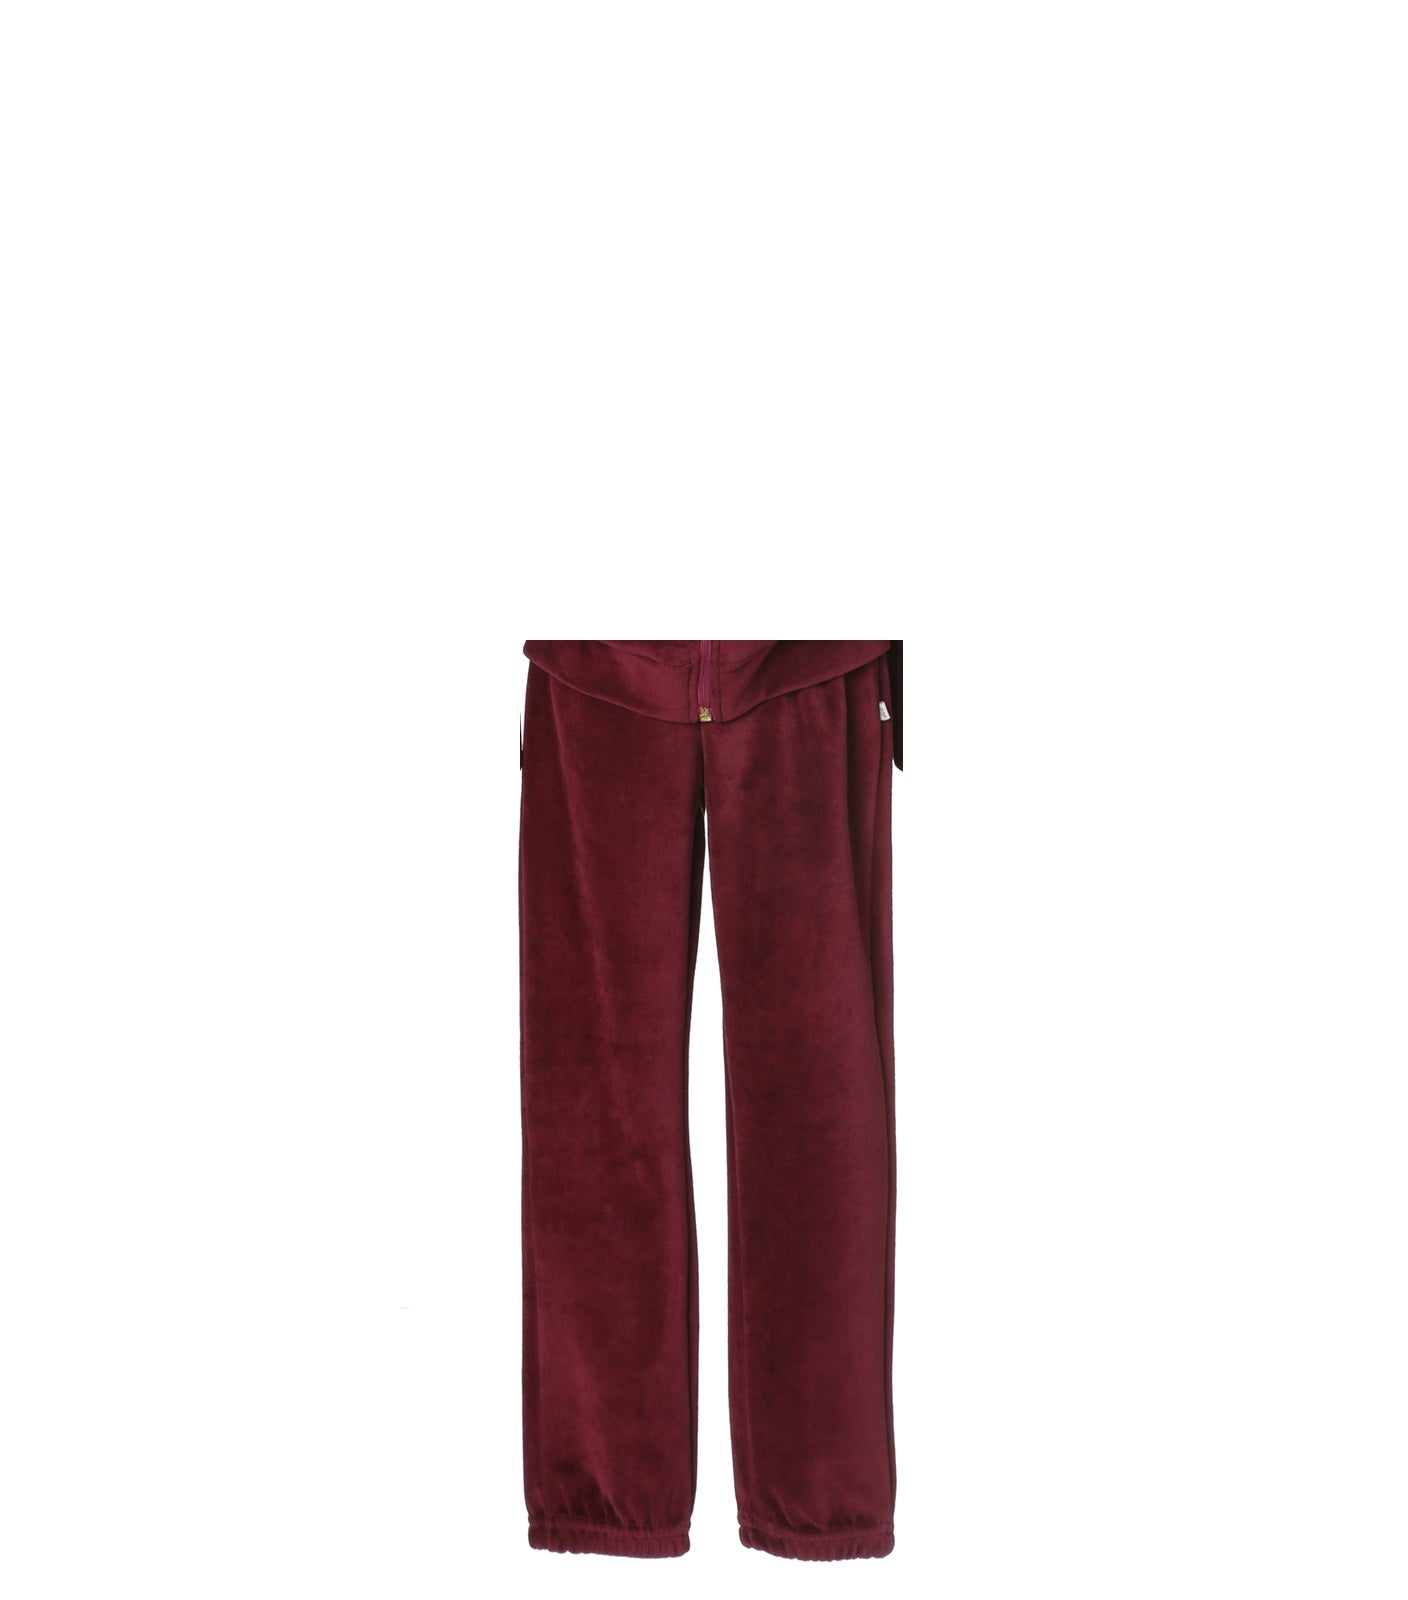 Maroon Track Pants for girls